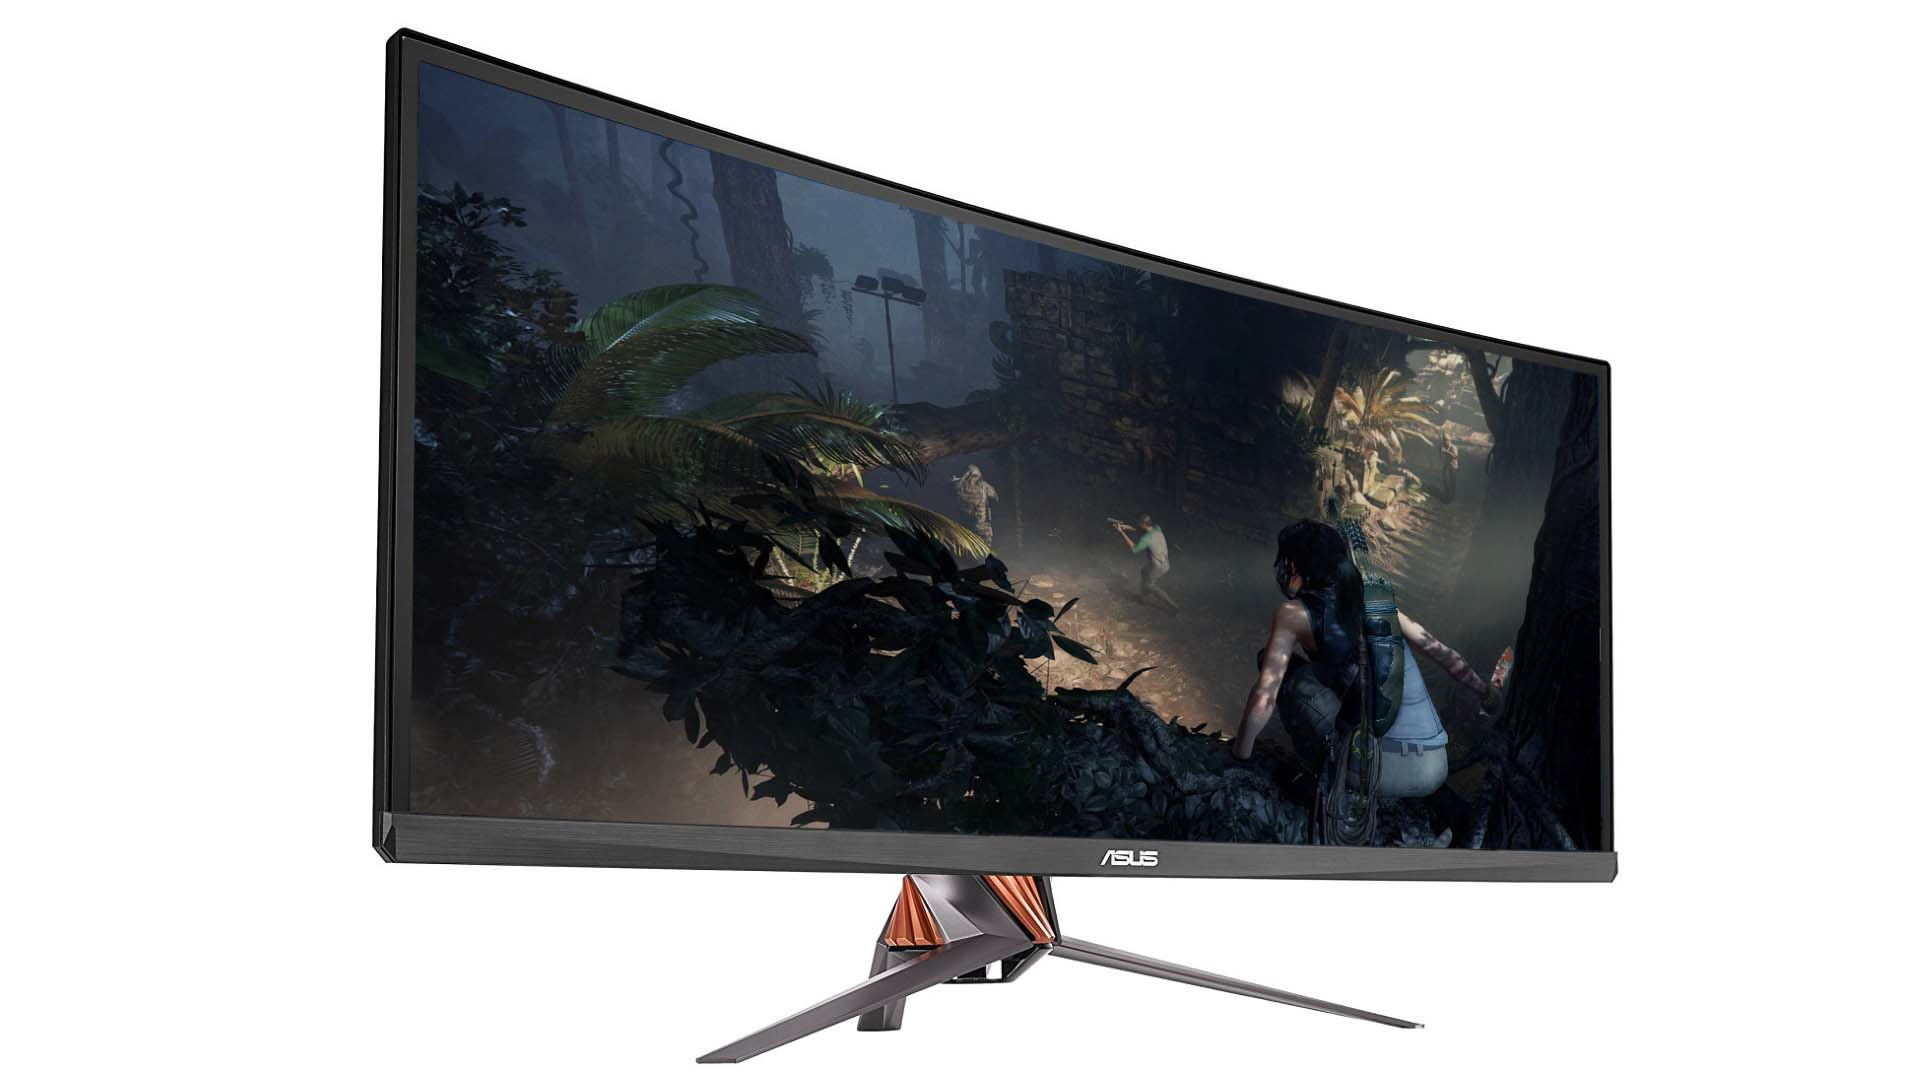 Best Ultrawide Monitor 2020 Best gaming monitor 2019 (July) | PCGamesN